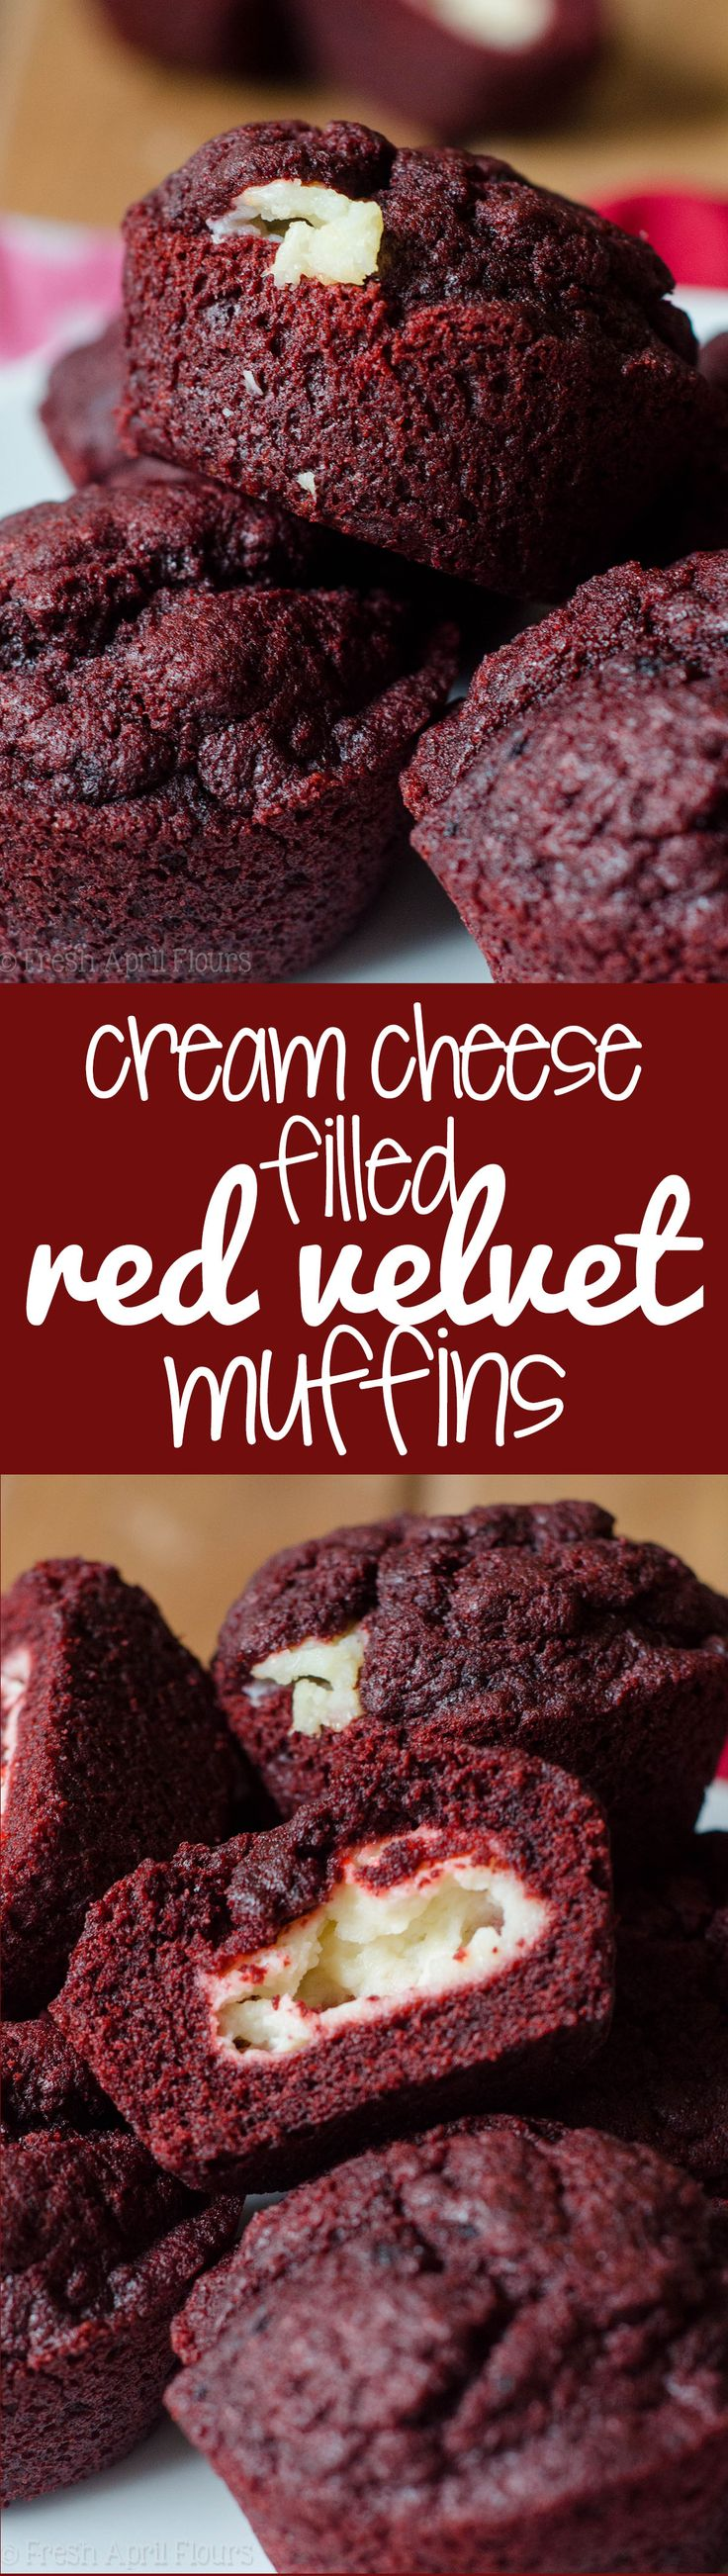 Cream Cheese Filled Red Velvet Muffins: All the red velvet flavor packed into a muffin, filled with lightly sweetened cream cheese filling. #Valentines #desserts